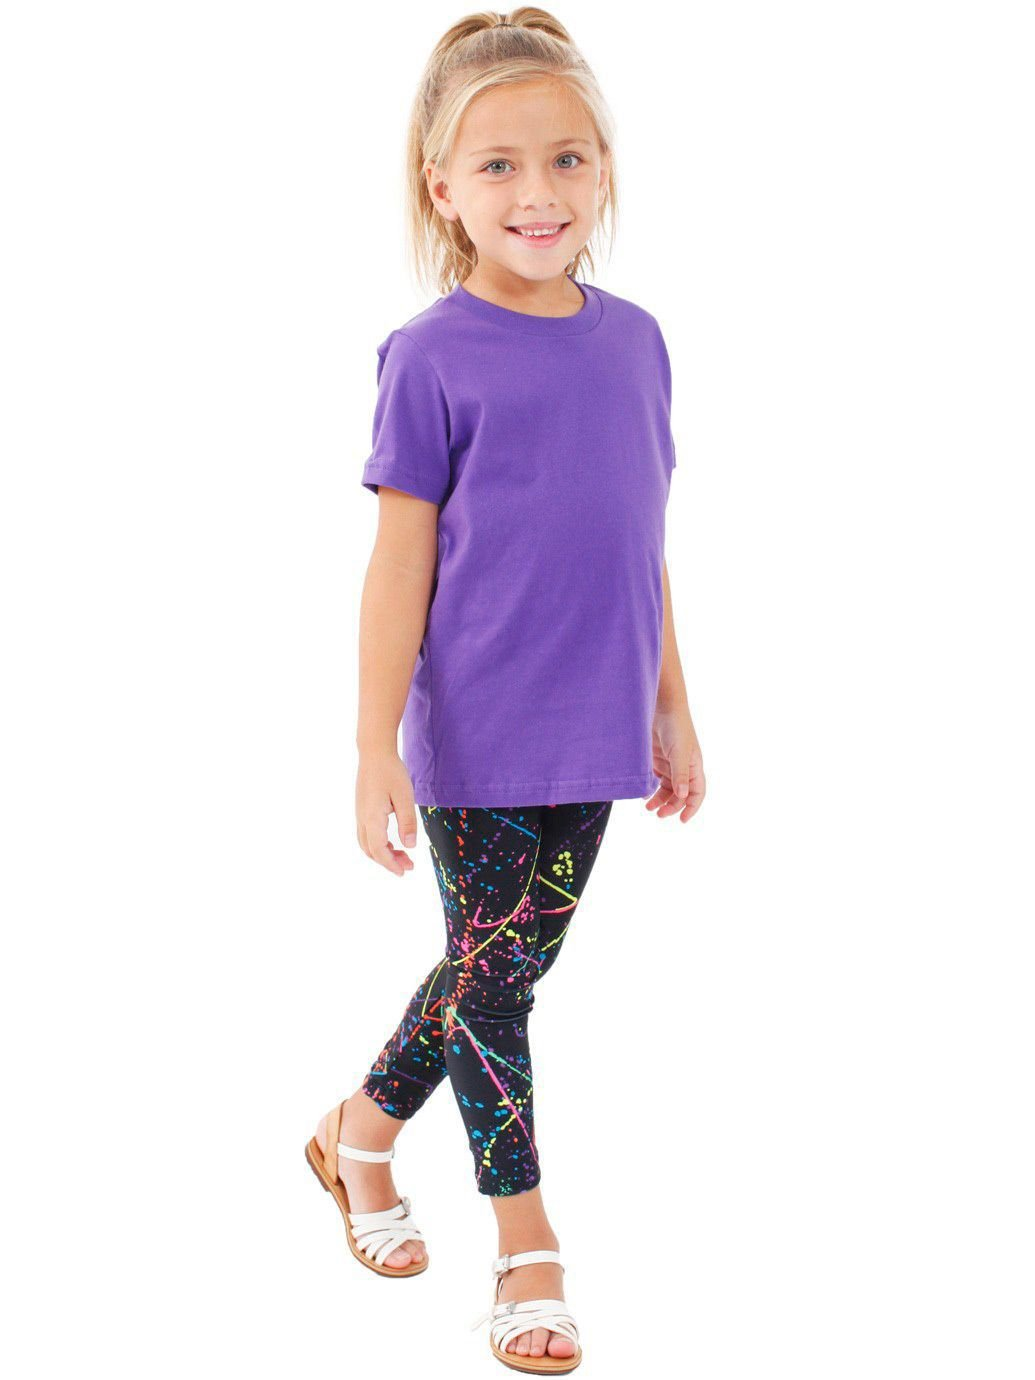 American Apparel Toddlers Fine Jersey Short-Sleeve T-Shirt (2105) -PURPLE -4T